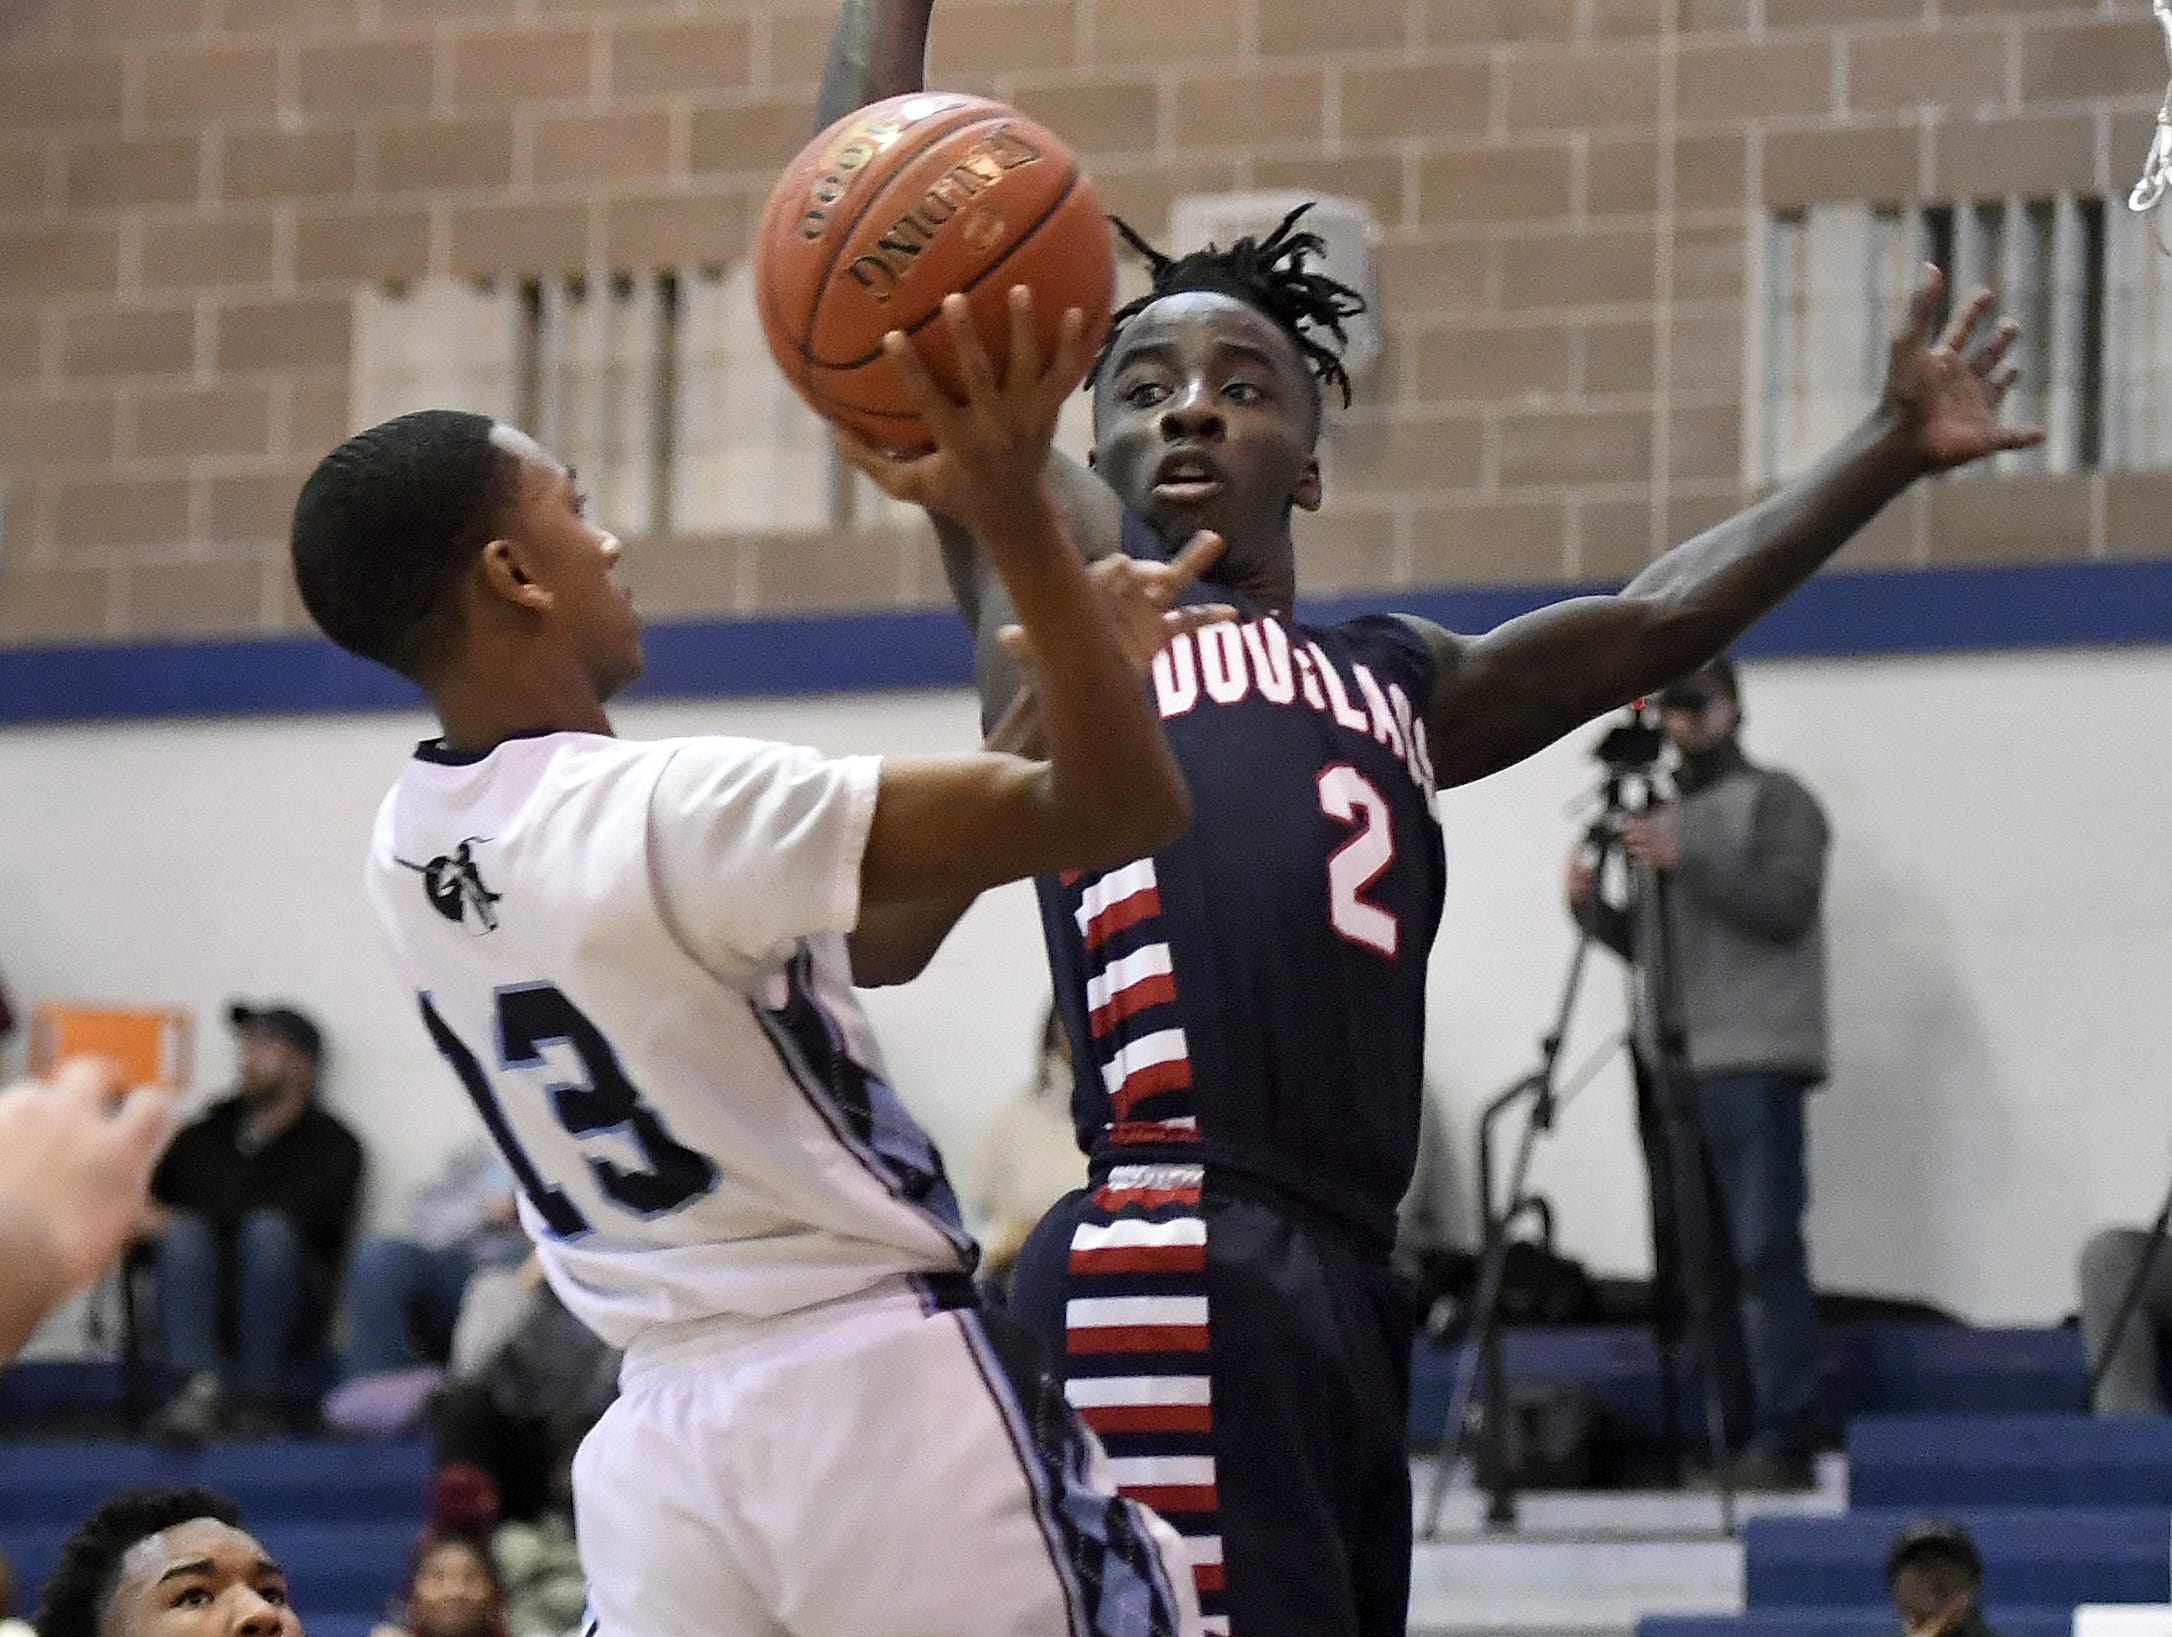 Eastridge's Jalan Young, left, is defended by NE Douglass' Jiahmere Mitchell during the finals of the Al Masino Memorial Tip-Off Tournament.